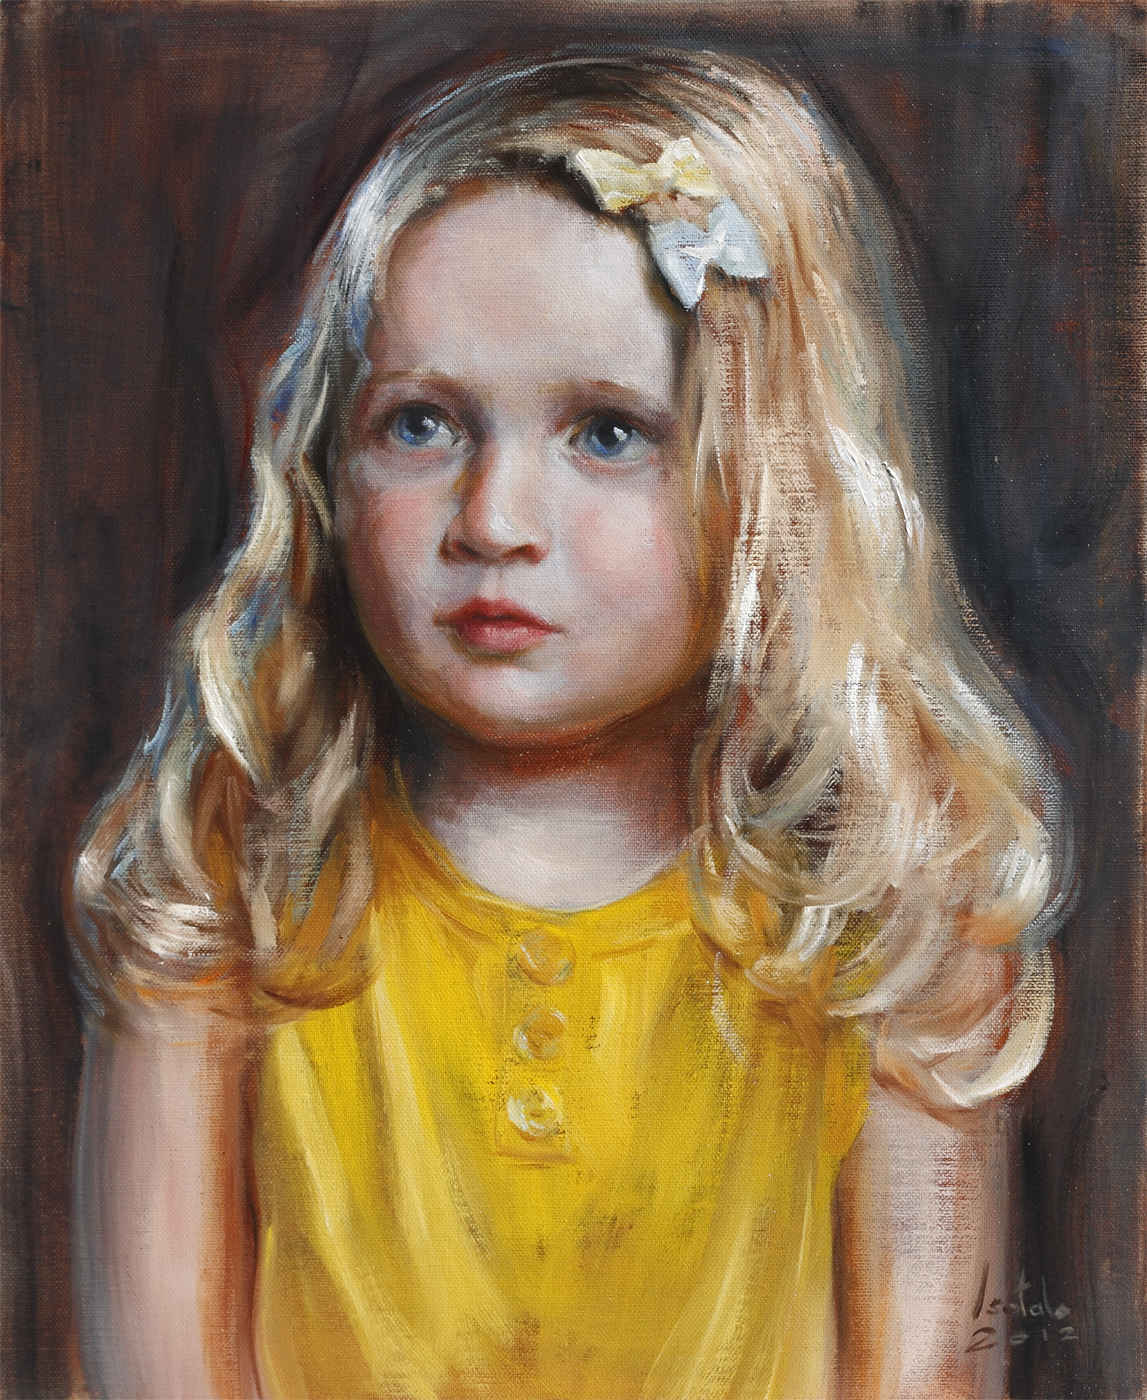 Collection of portraits oil paintings by various artists